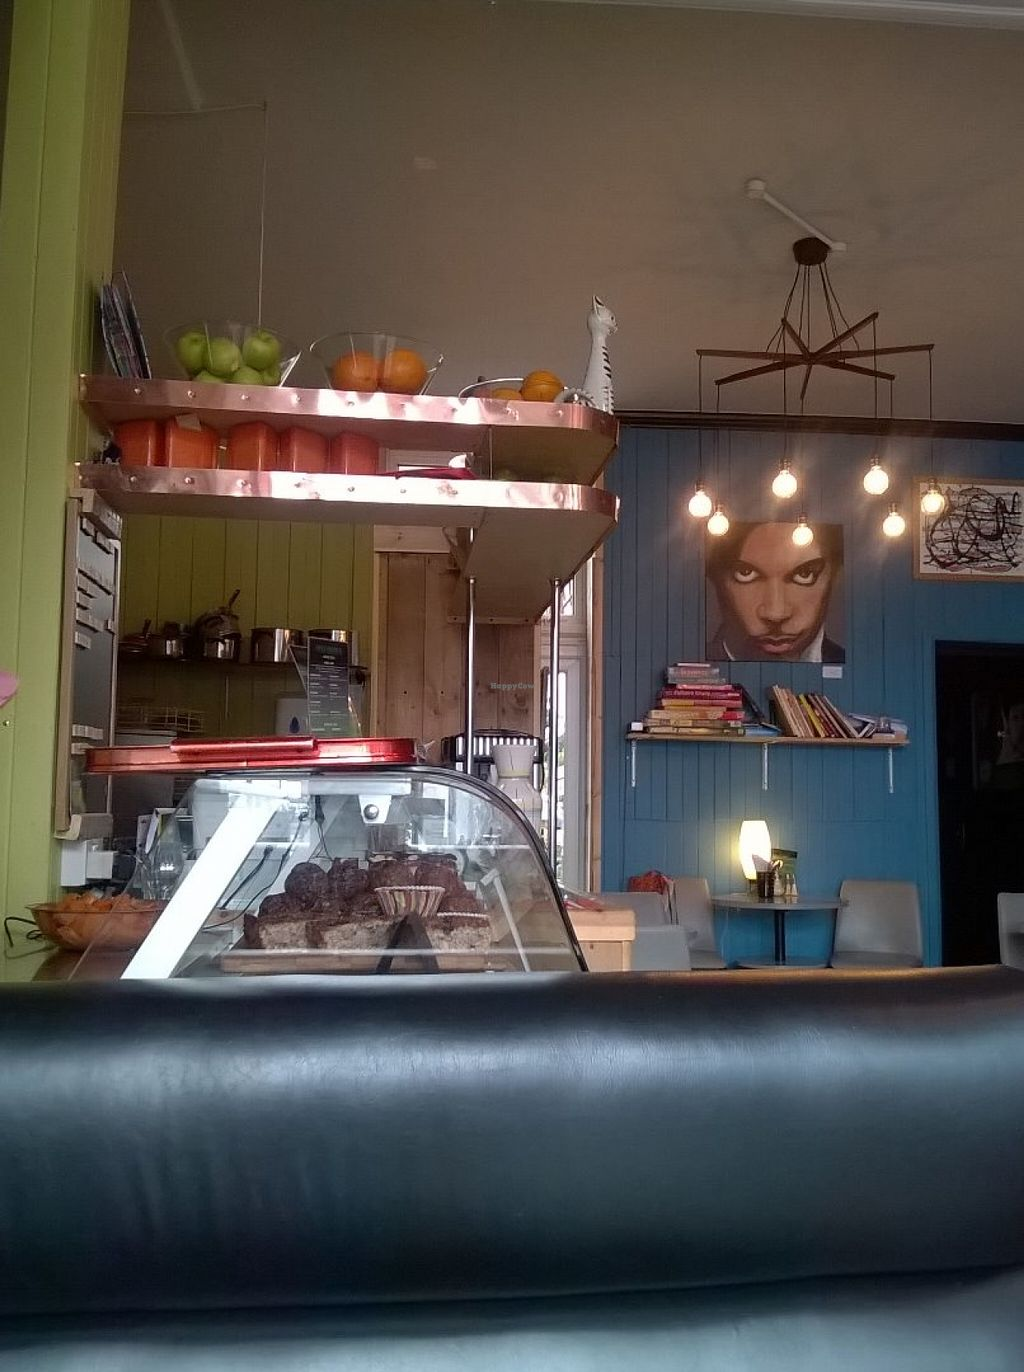 """Photo of Pulp Fiction Future Food and Juice Cafe  by <a href=""""/members/profile/deadpledge"""">deadpledge</a> <br/>Inside décor and cake counter <br/> June 16, 2016  - <a href='/contact/abuse/image/59089/154266'>Report</a>"""